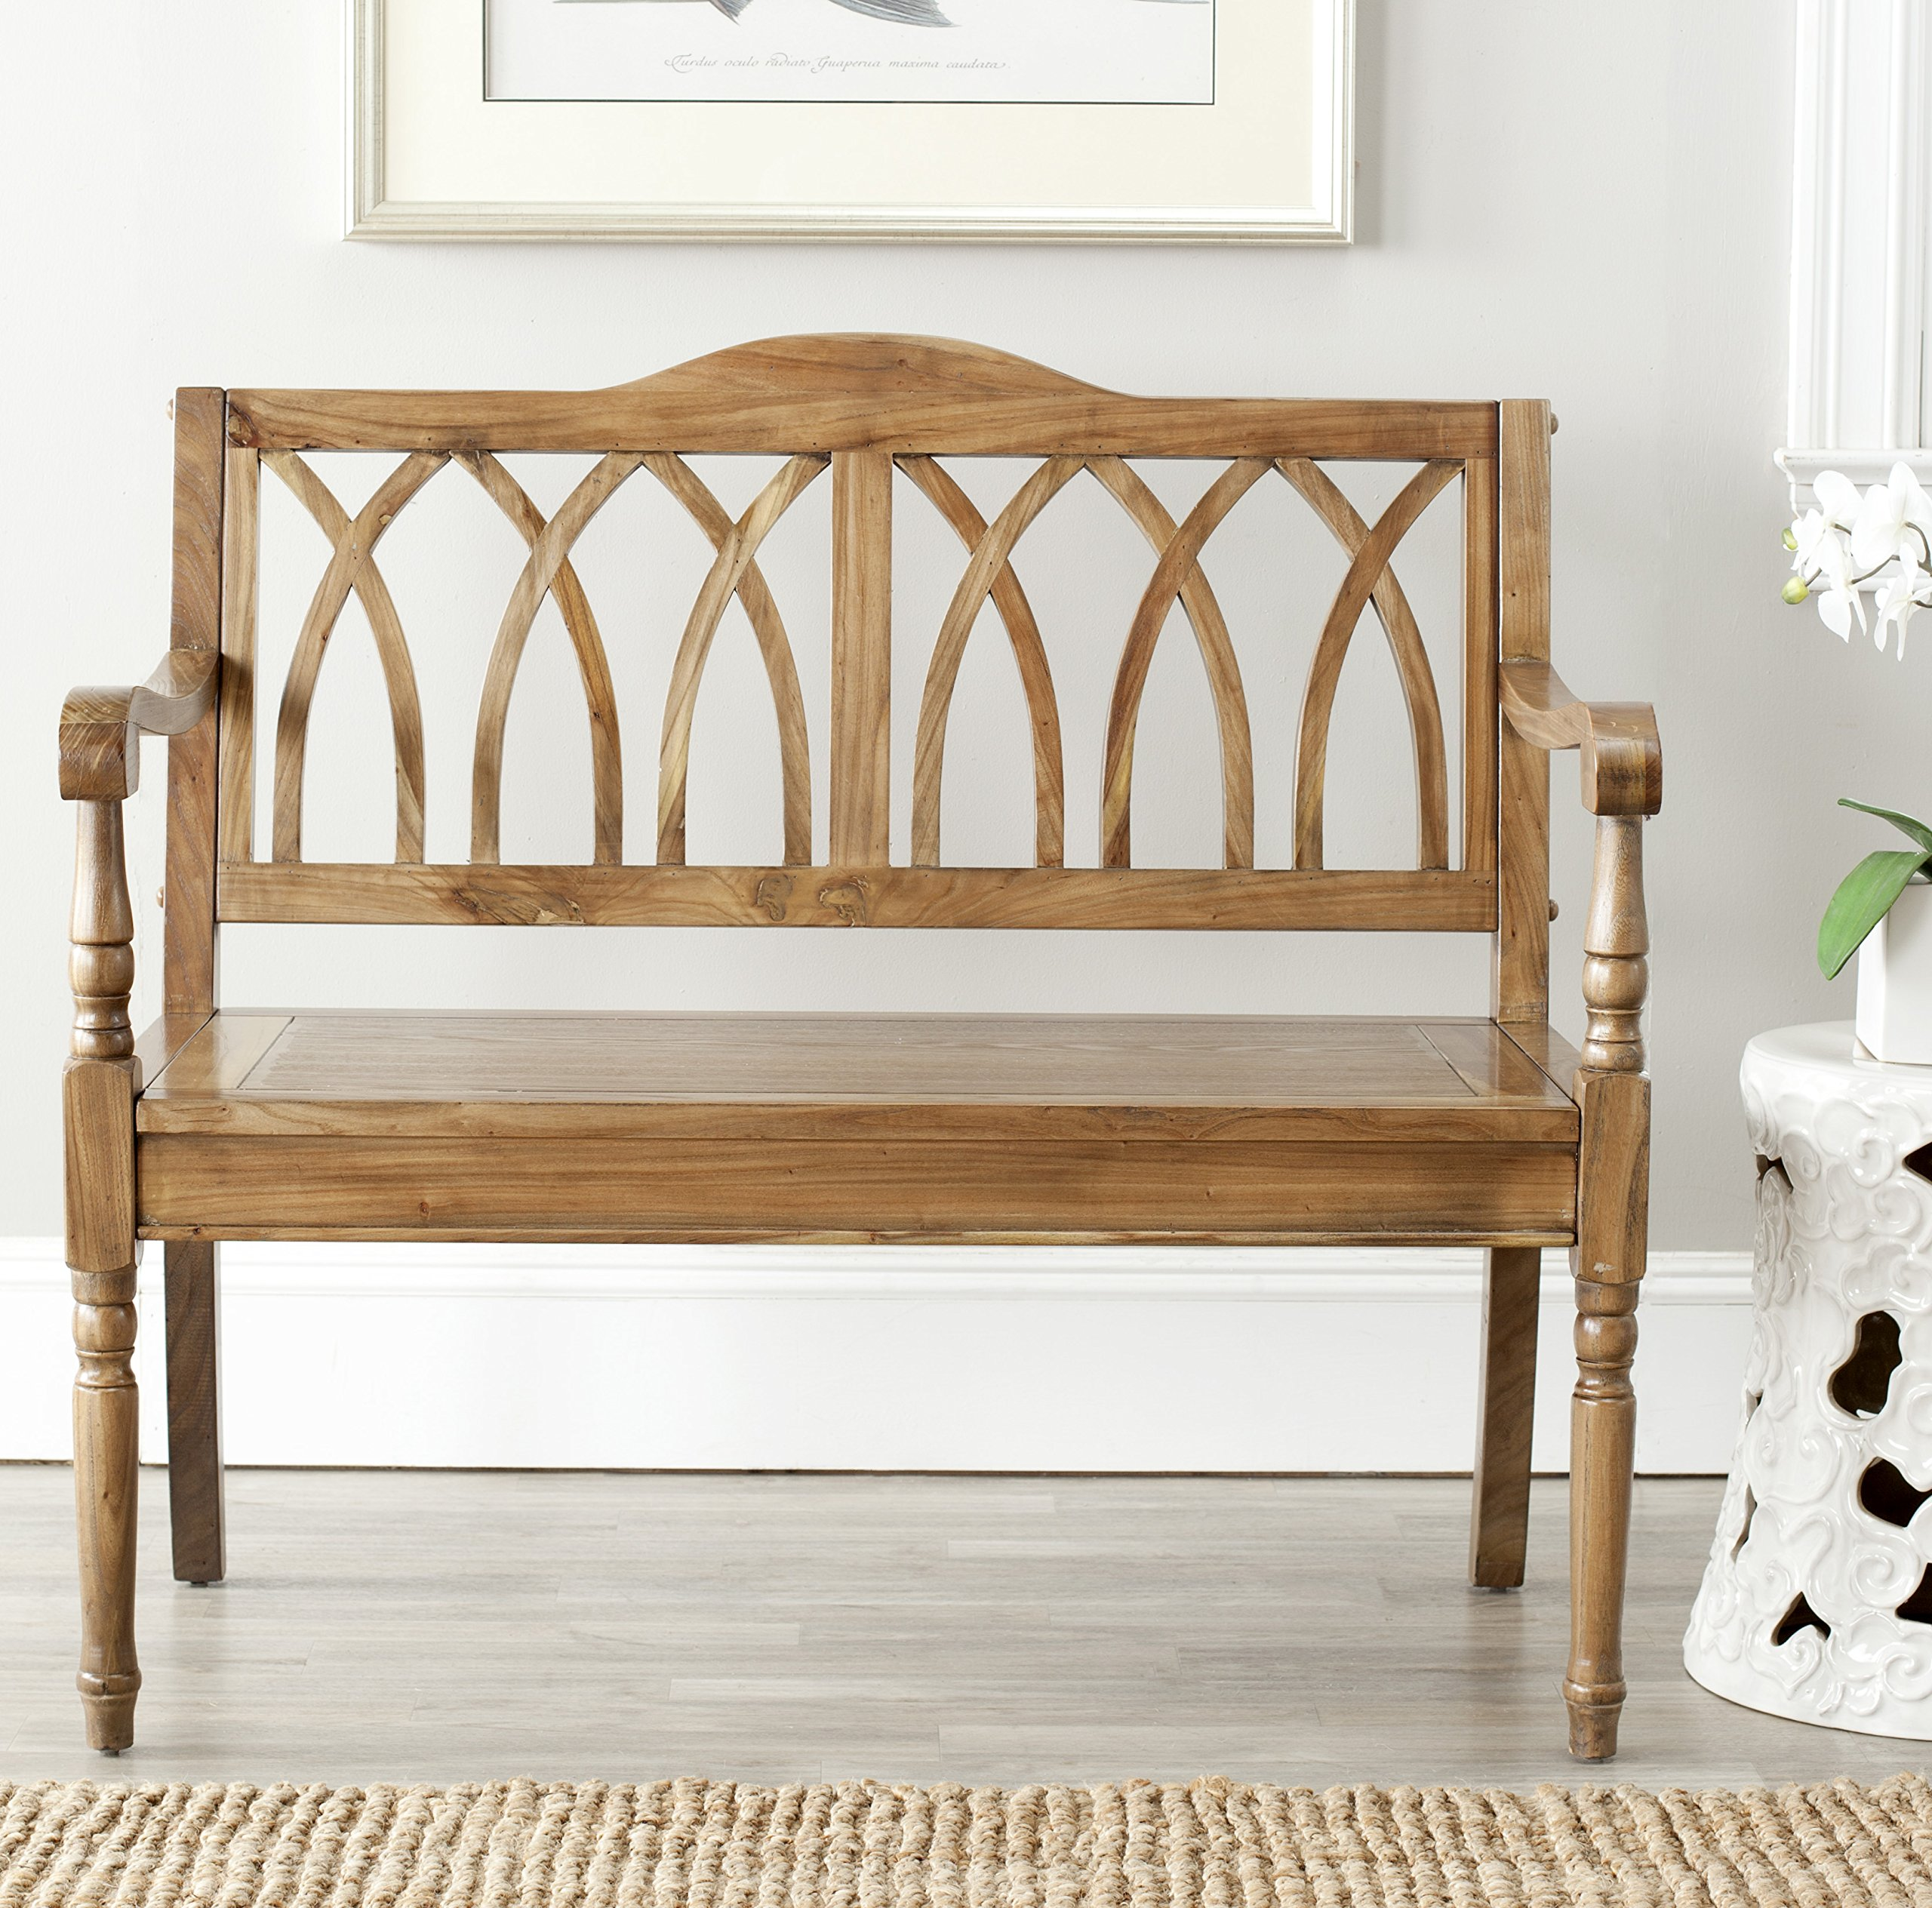 Safavieh American Homes Collection Benjamin Oak Bench by Safavieh